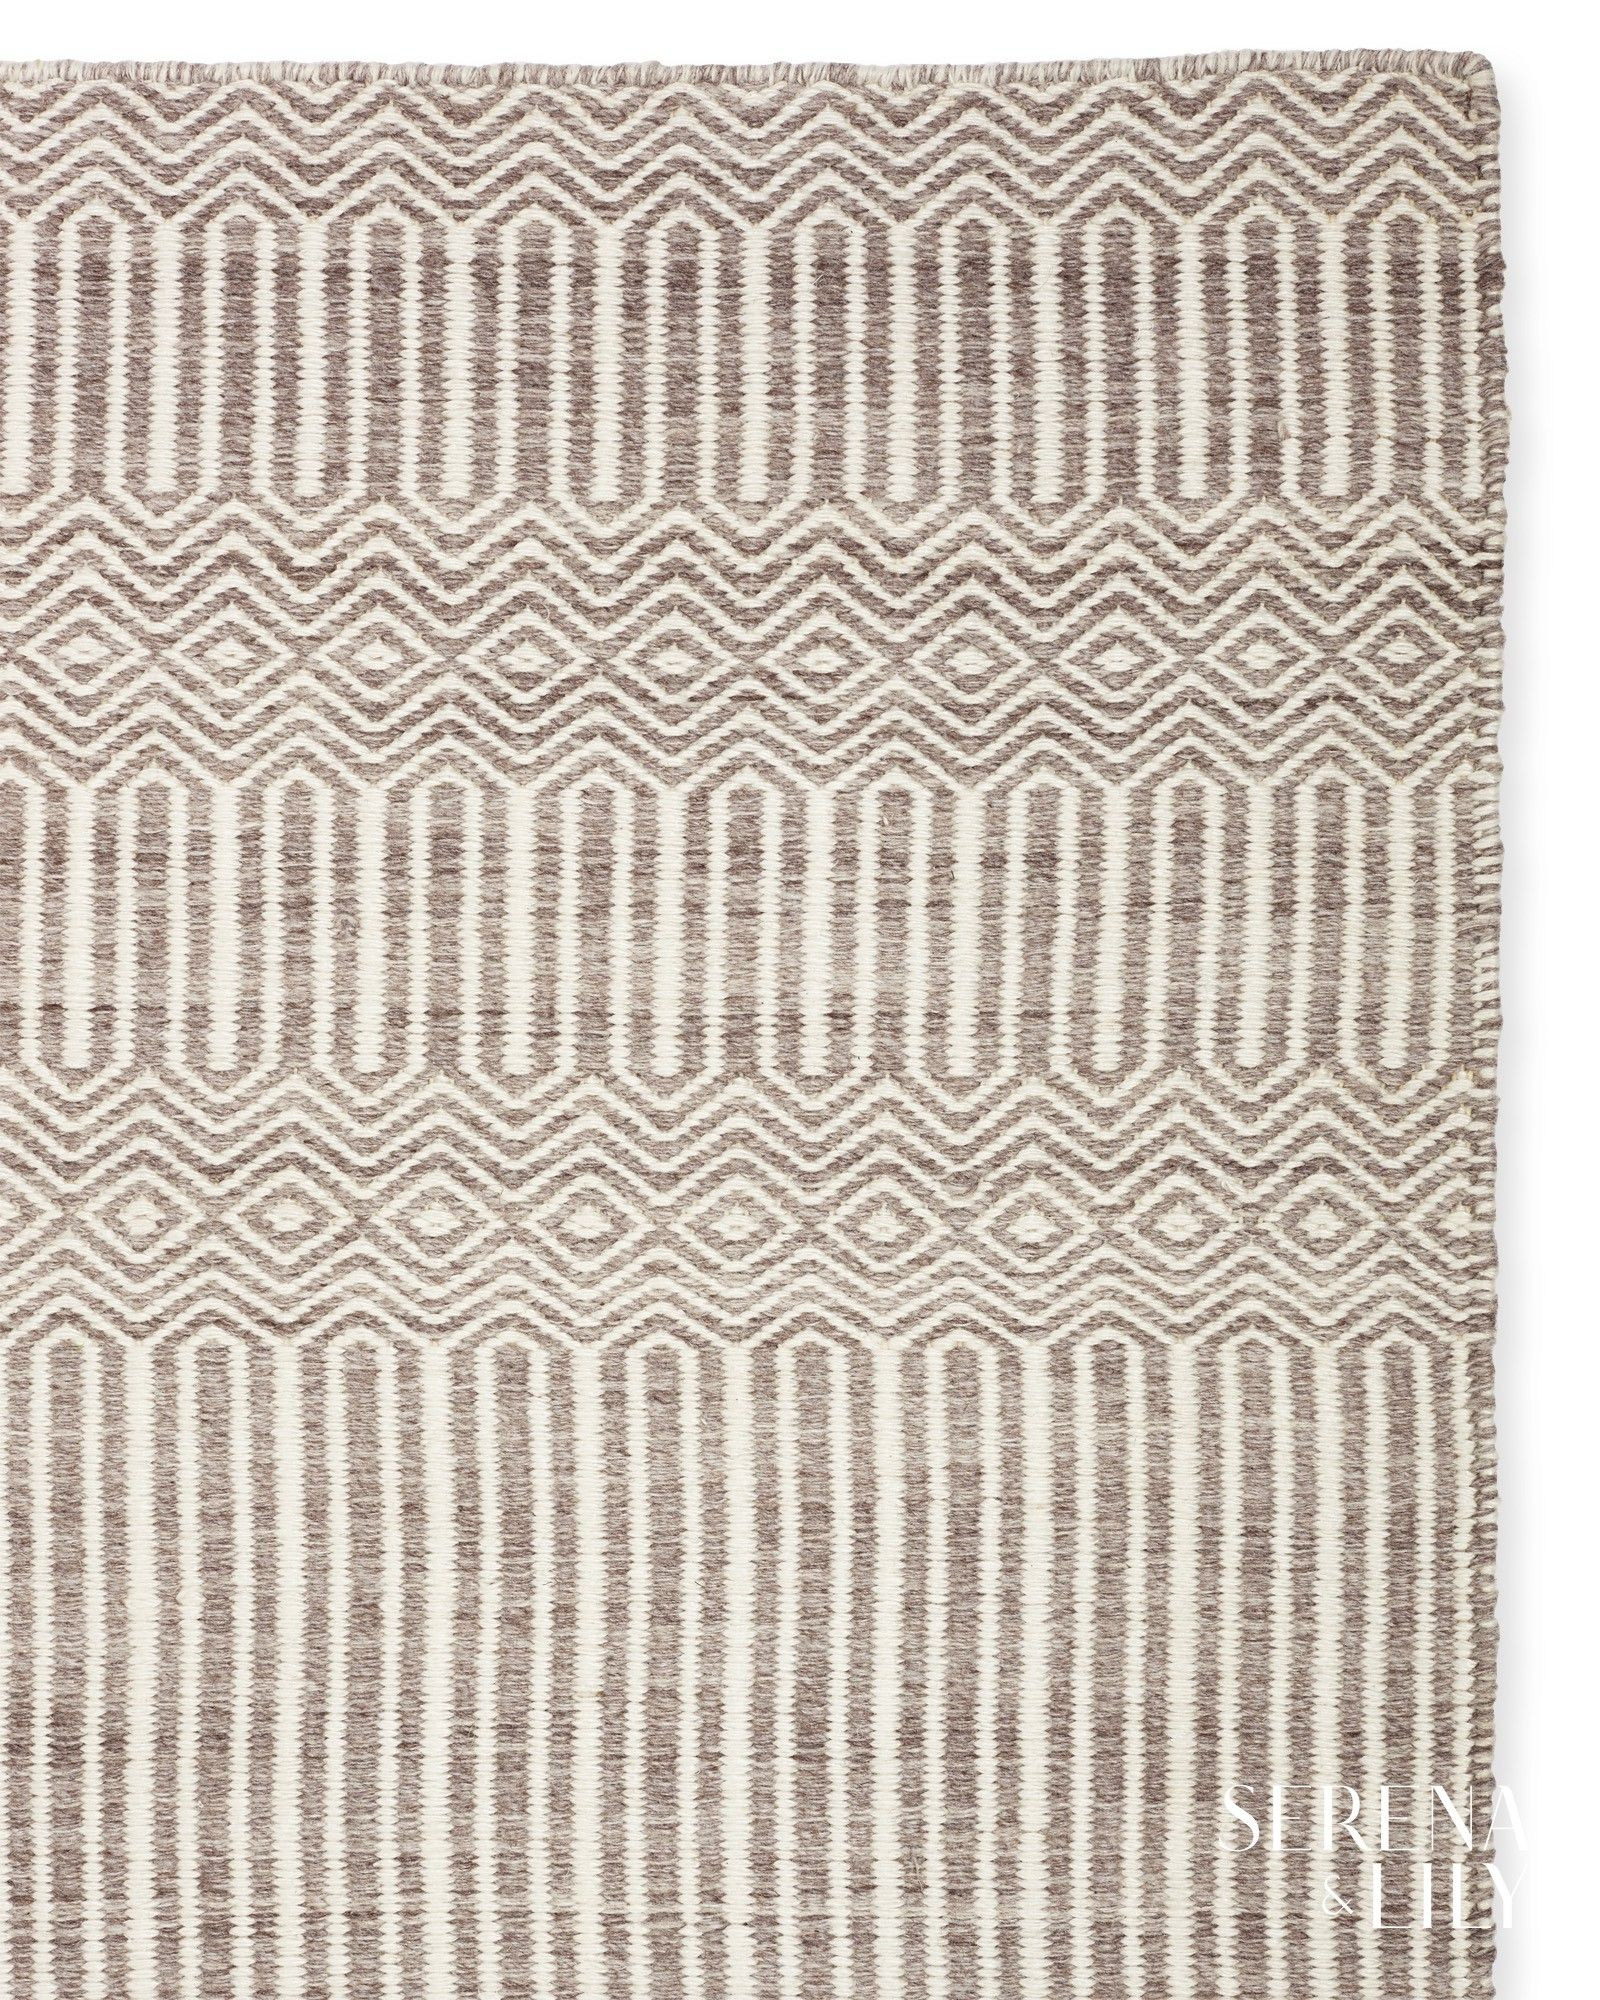 The Best Designer Rugs Navy Area Rugs Serena Lily In 2020 Rugs Unique Rugs Striped Rug